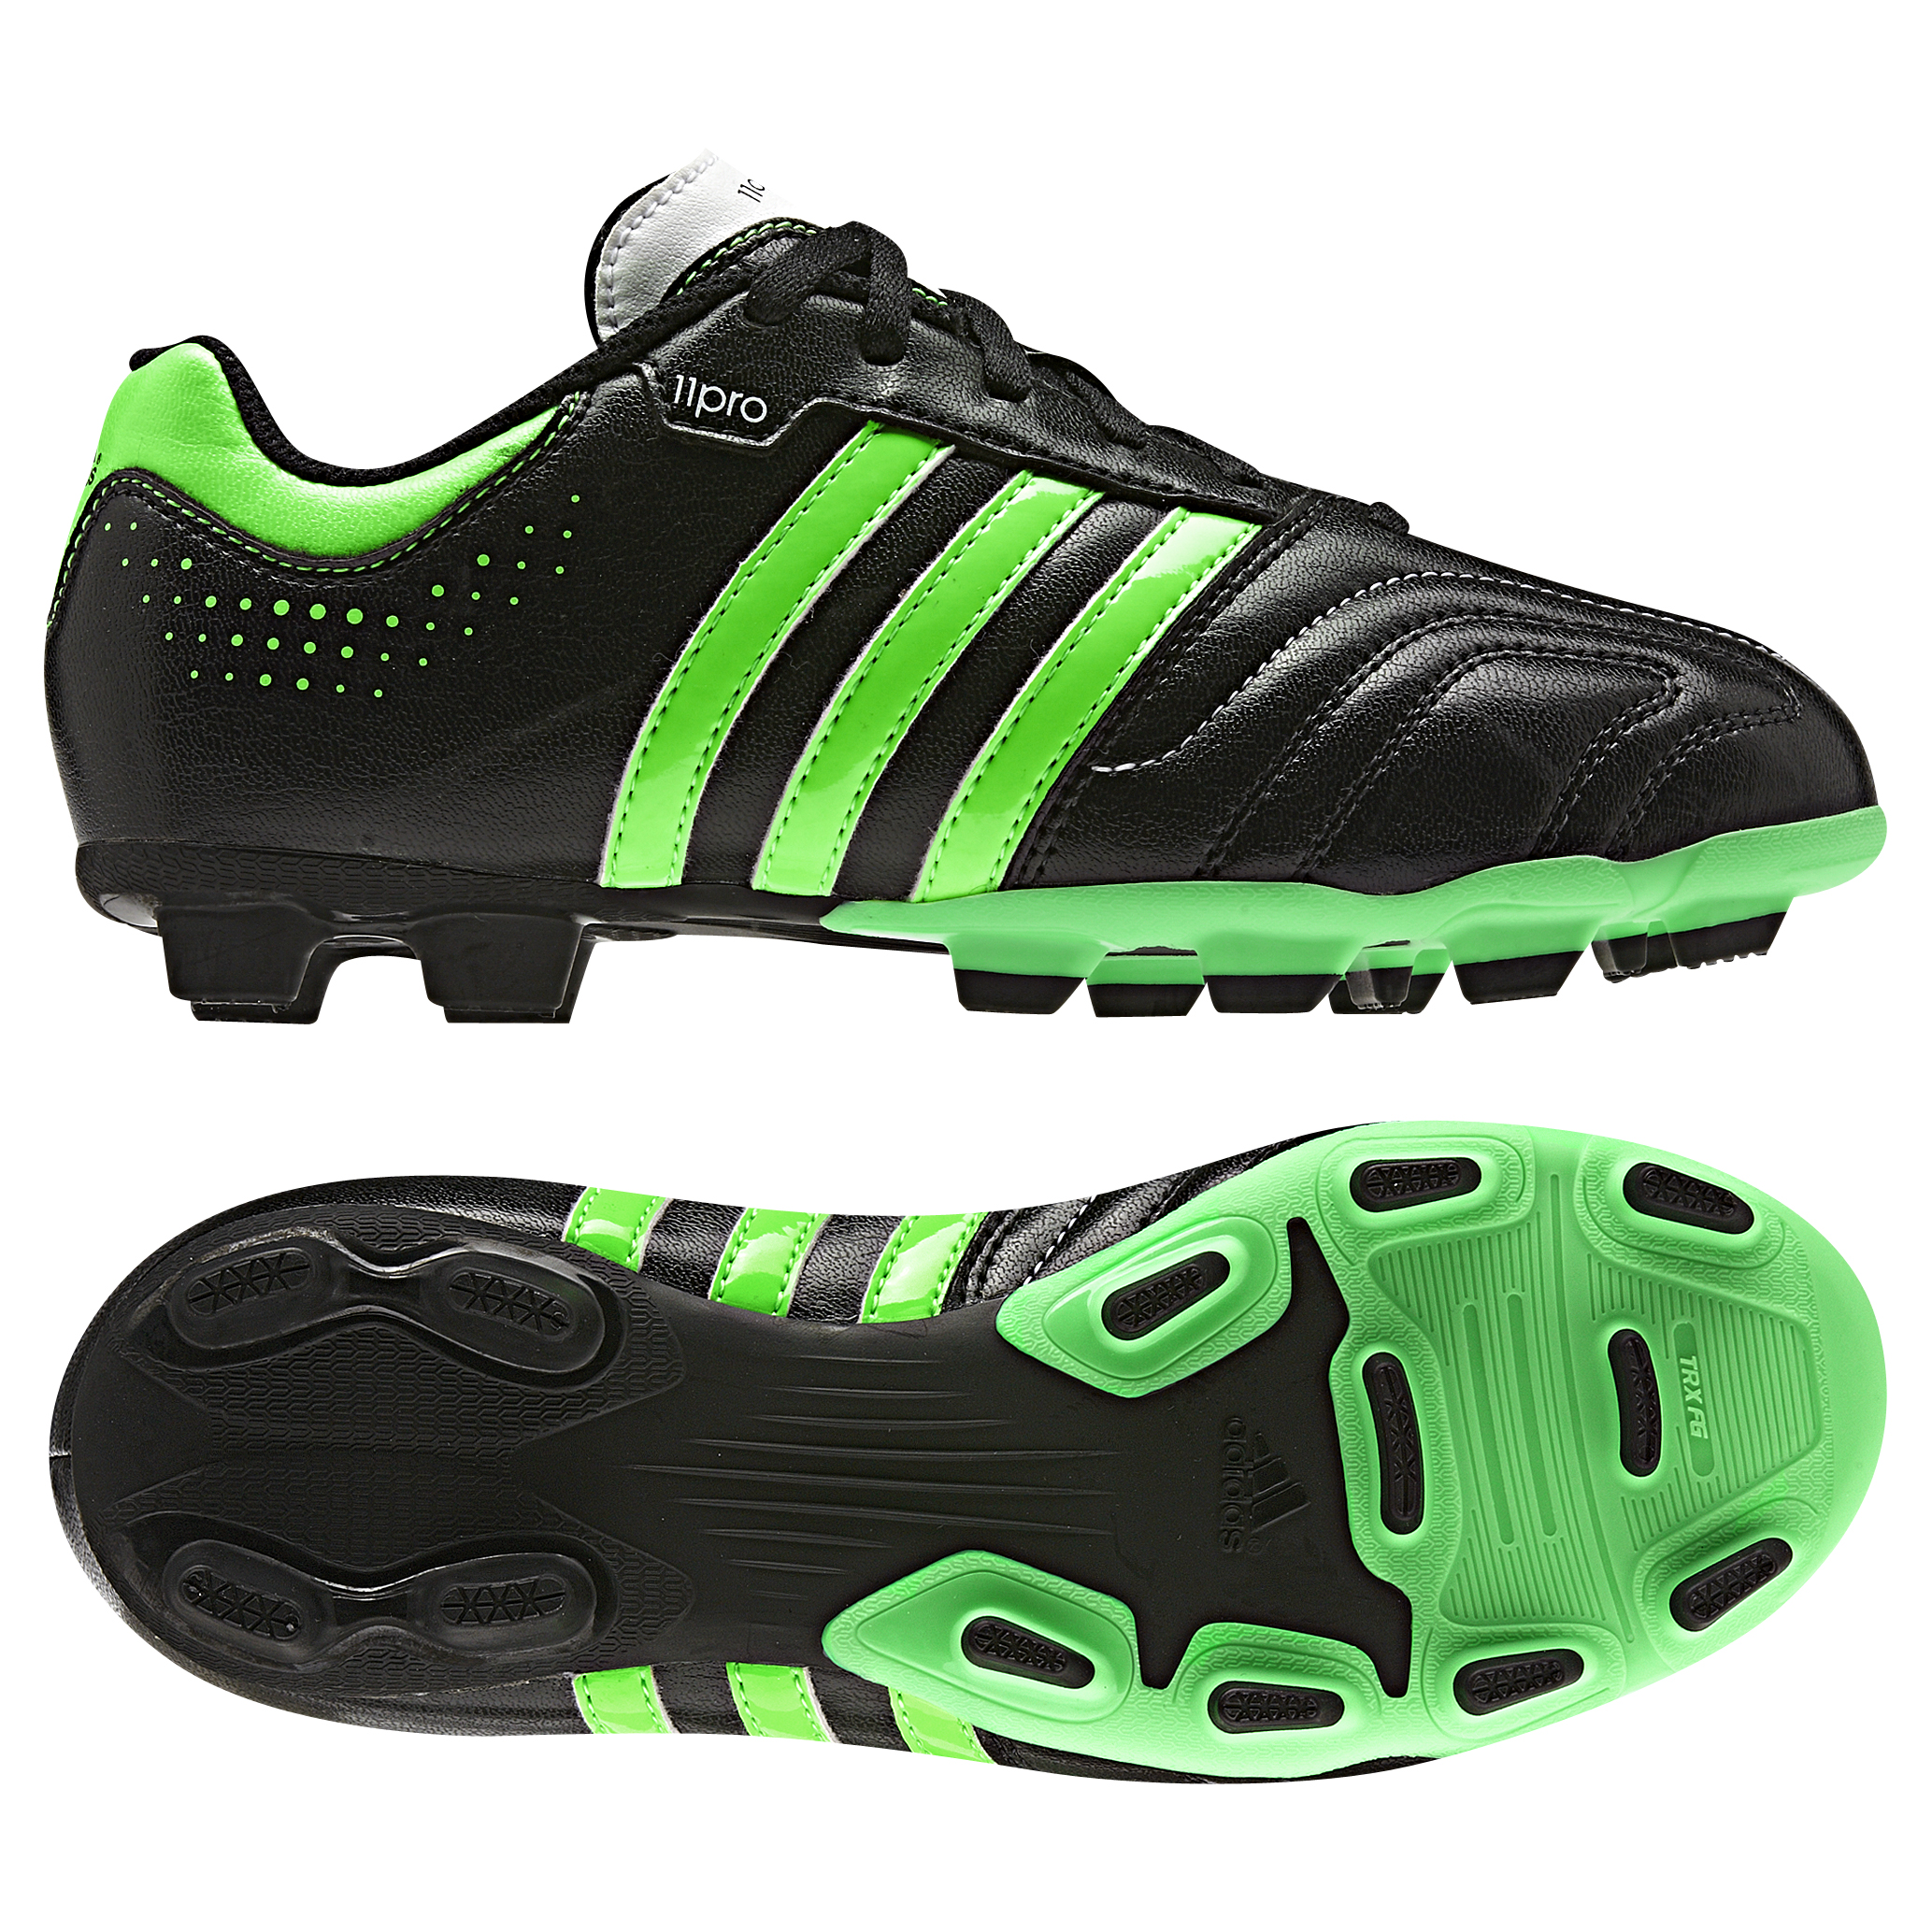 AdiPure 11Questra TRX FG Black/Green Zest/White Kids